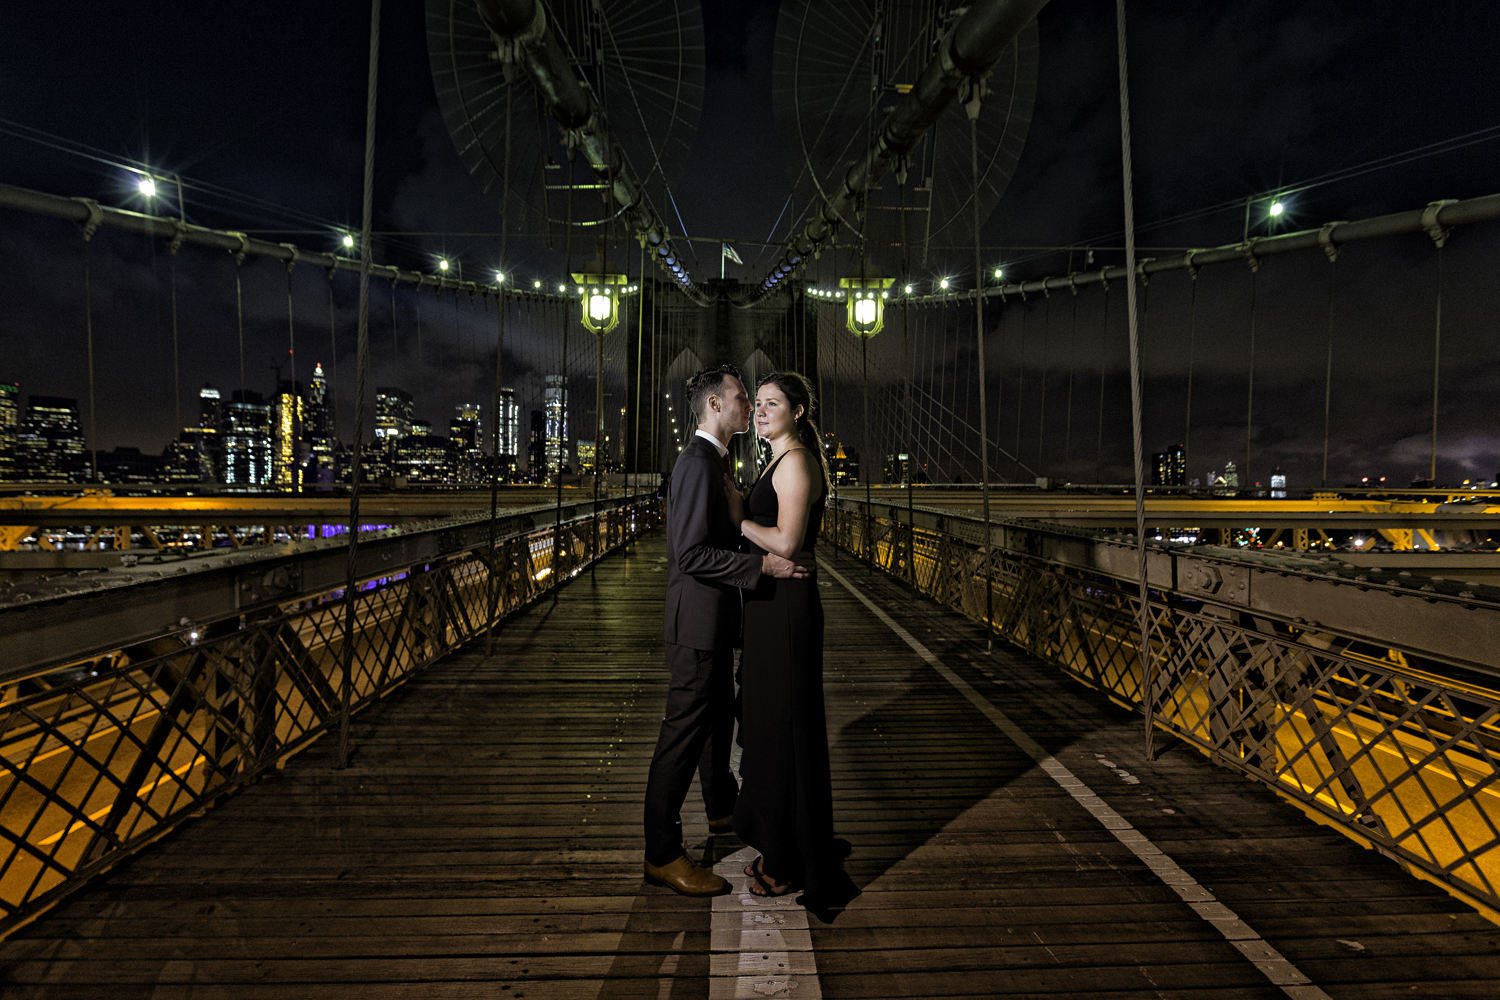 nyc-brooklynbridge-night-web.jpg